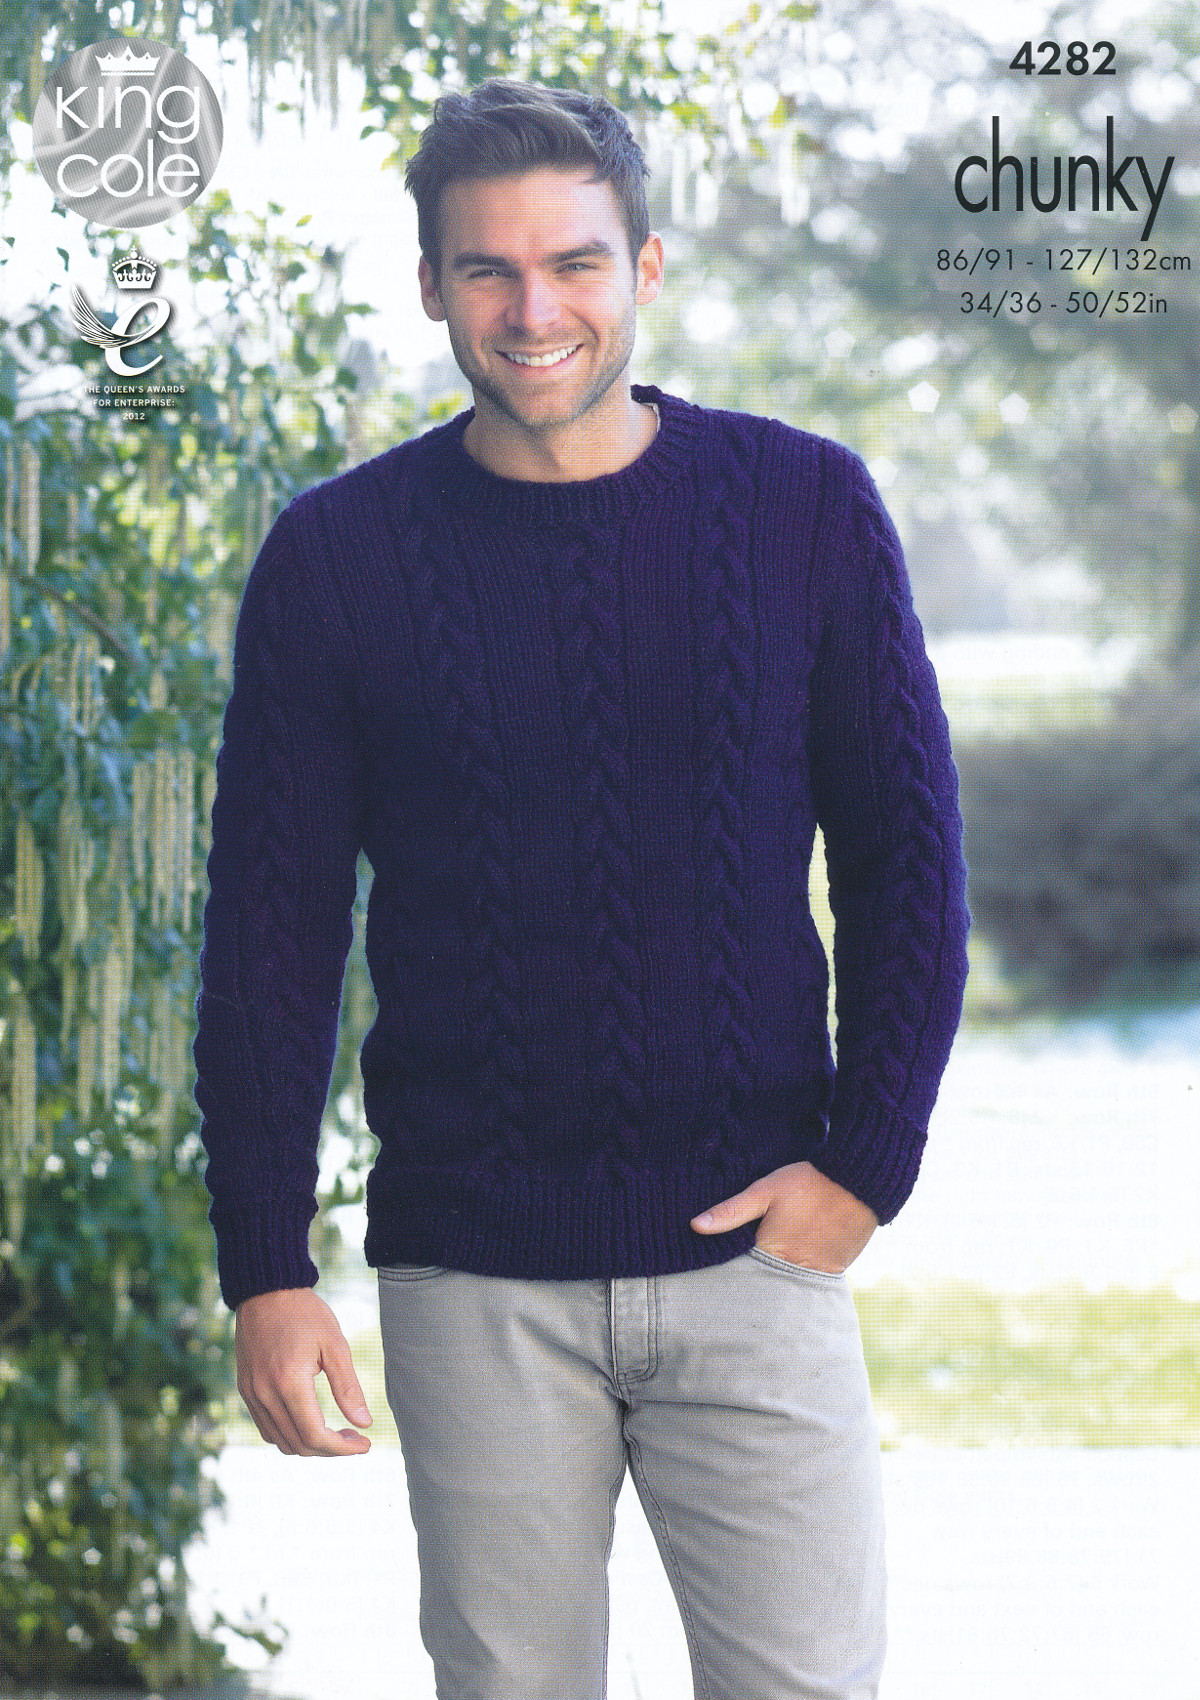 febaf1475f Mens Chunky Knitting Pattern King Cole Cable Knit Sweater Jumper Pullover  4282